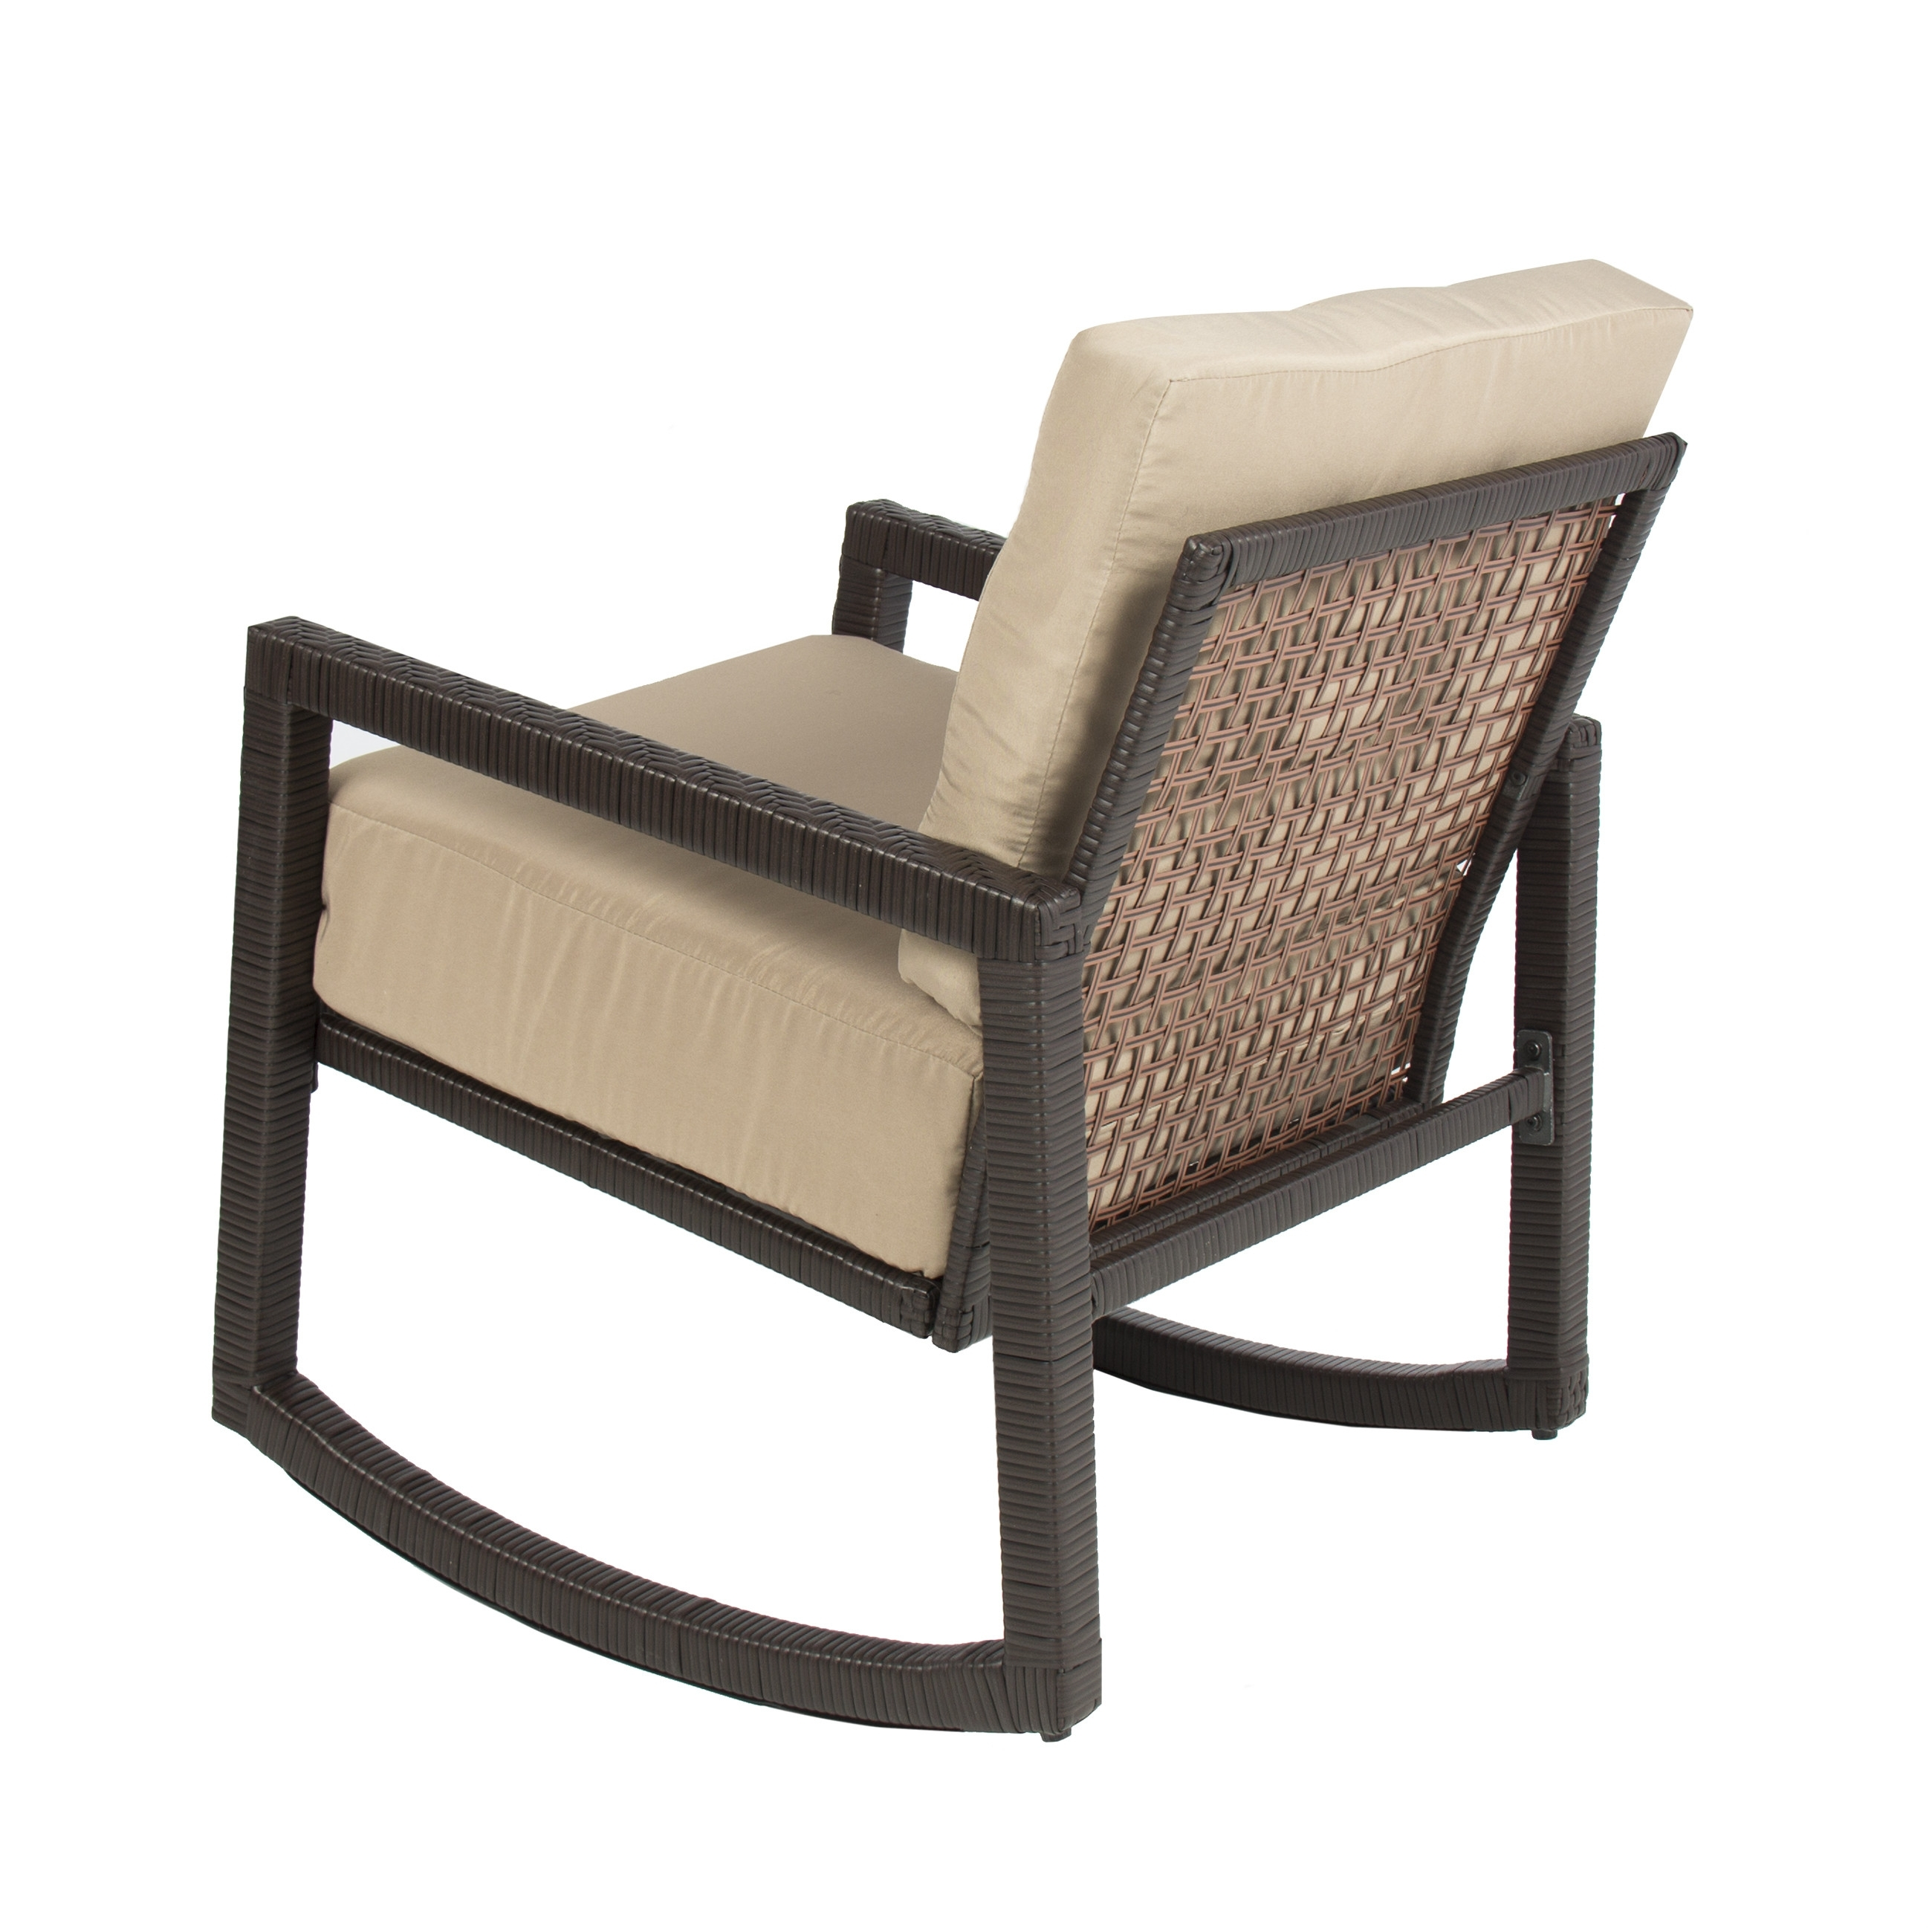 Outdoor Furniture Rocking Chairs Best Of Wicker Chair With Cushion Throughout Current Outdoor Wicker Rocking Chairs With Cushions (View 10 of 20)